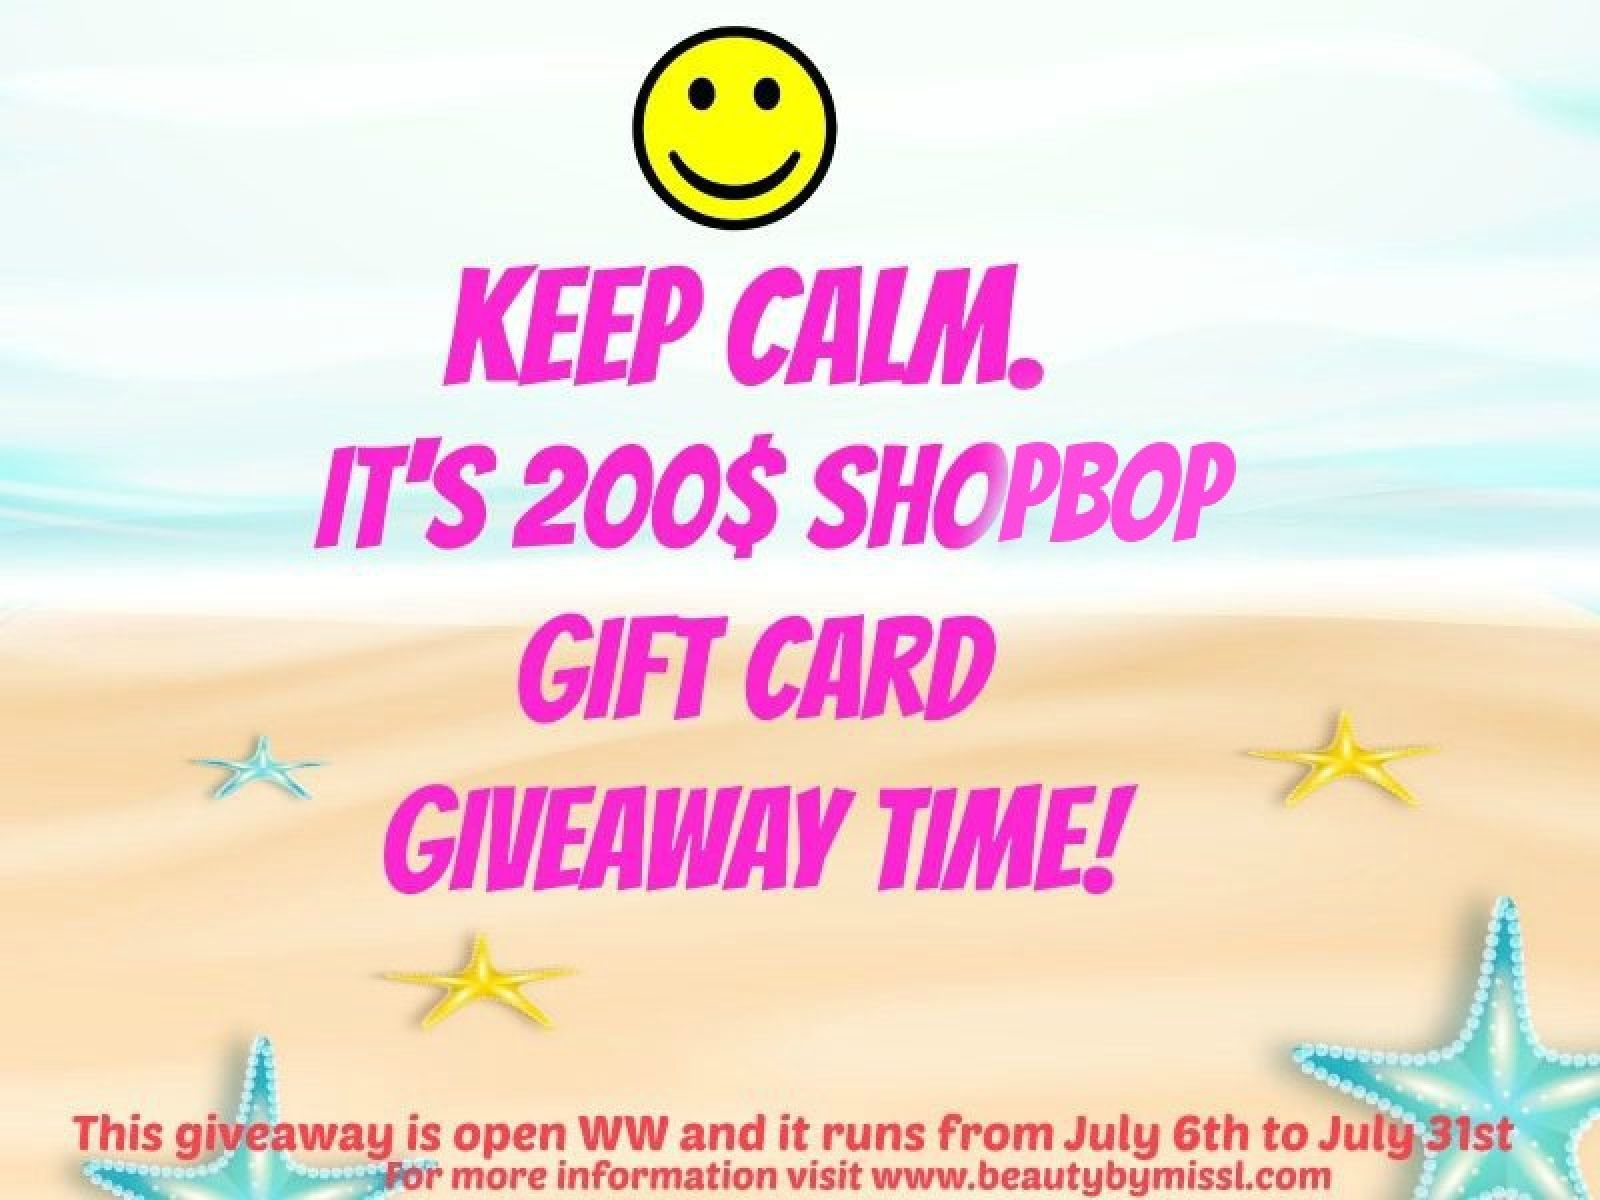 Keep Calm. It's 200$ Shopbop gift card giveaway time! via @beautybymissl